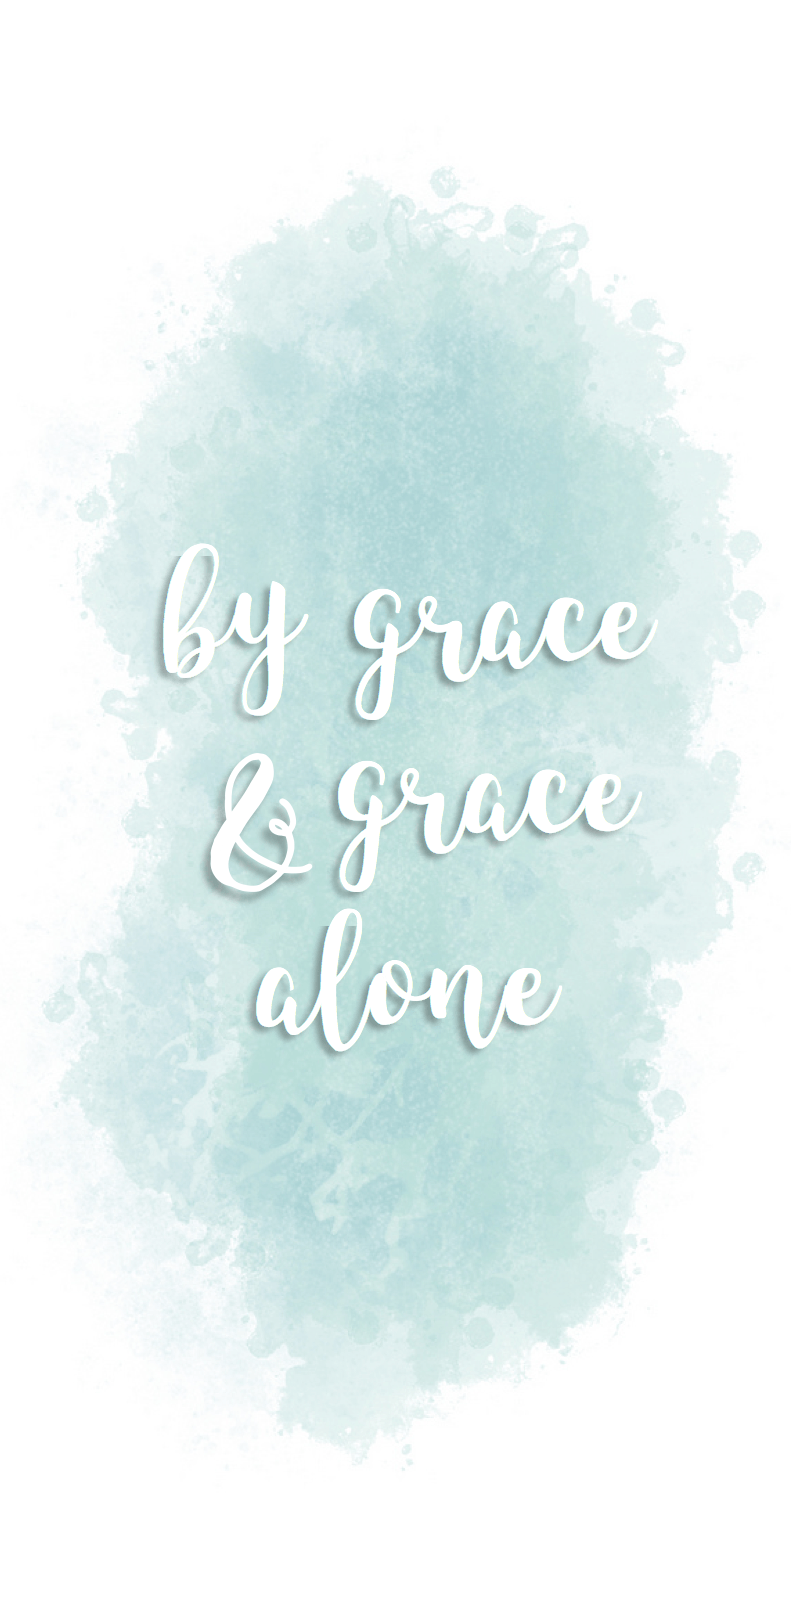 Grace Alone. Iphone wallpaper quotes bible, Wallpaper